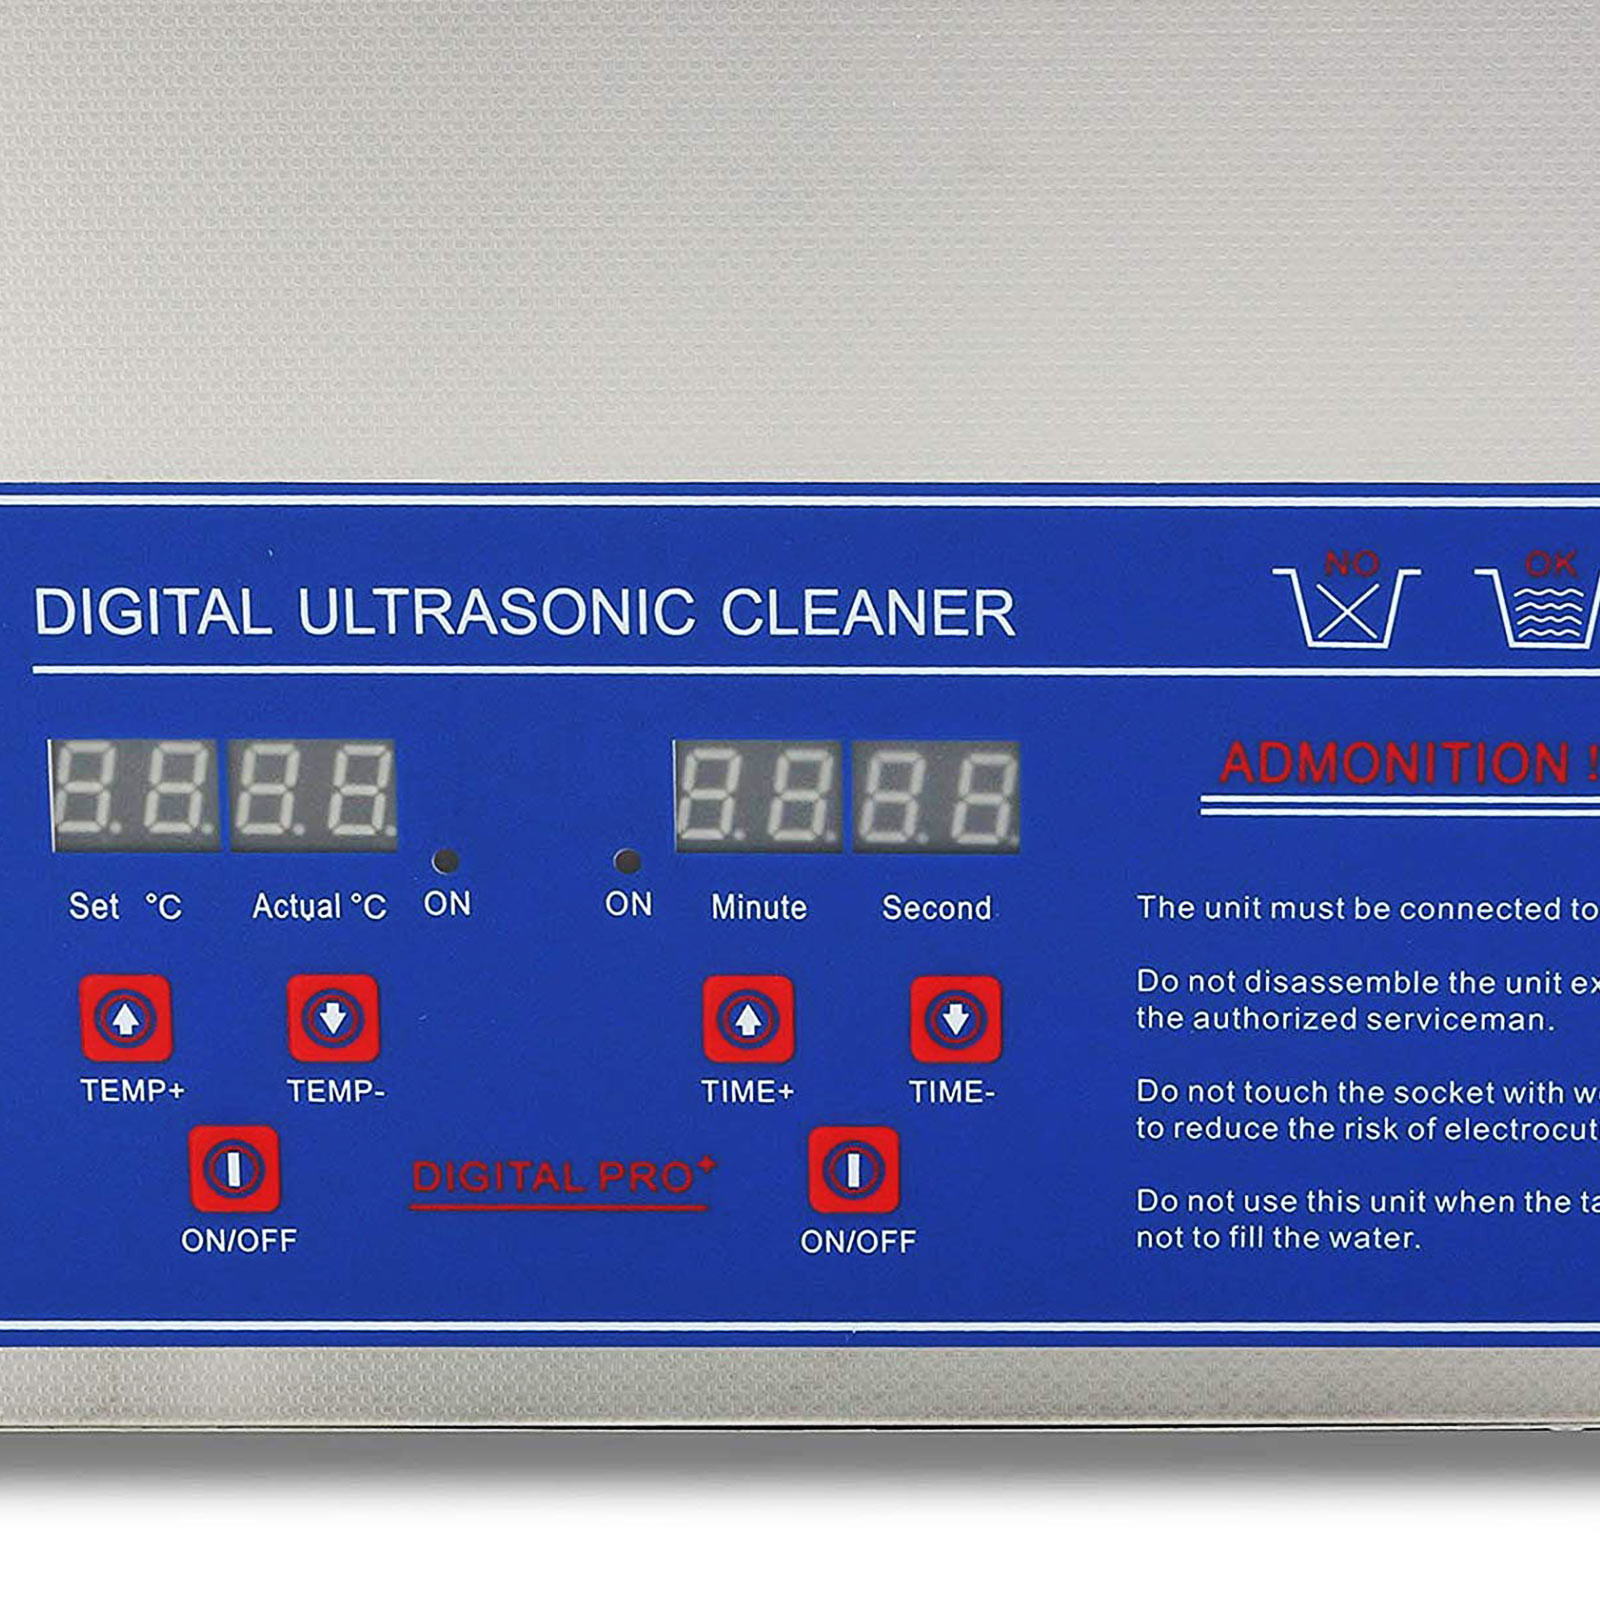 Multi-Ultrasonic-Cleaner-Supplies-Jewelry-1-3-2L-3L-6L-10L-15L-22L-30L thumbnail 43